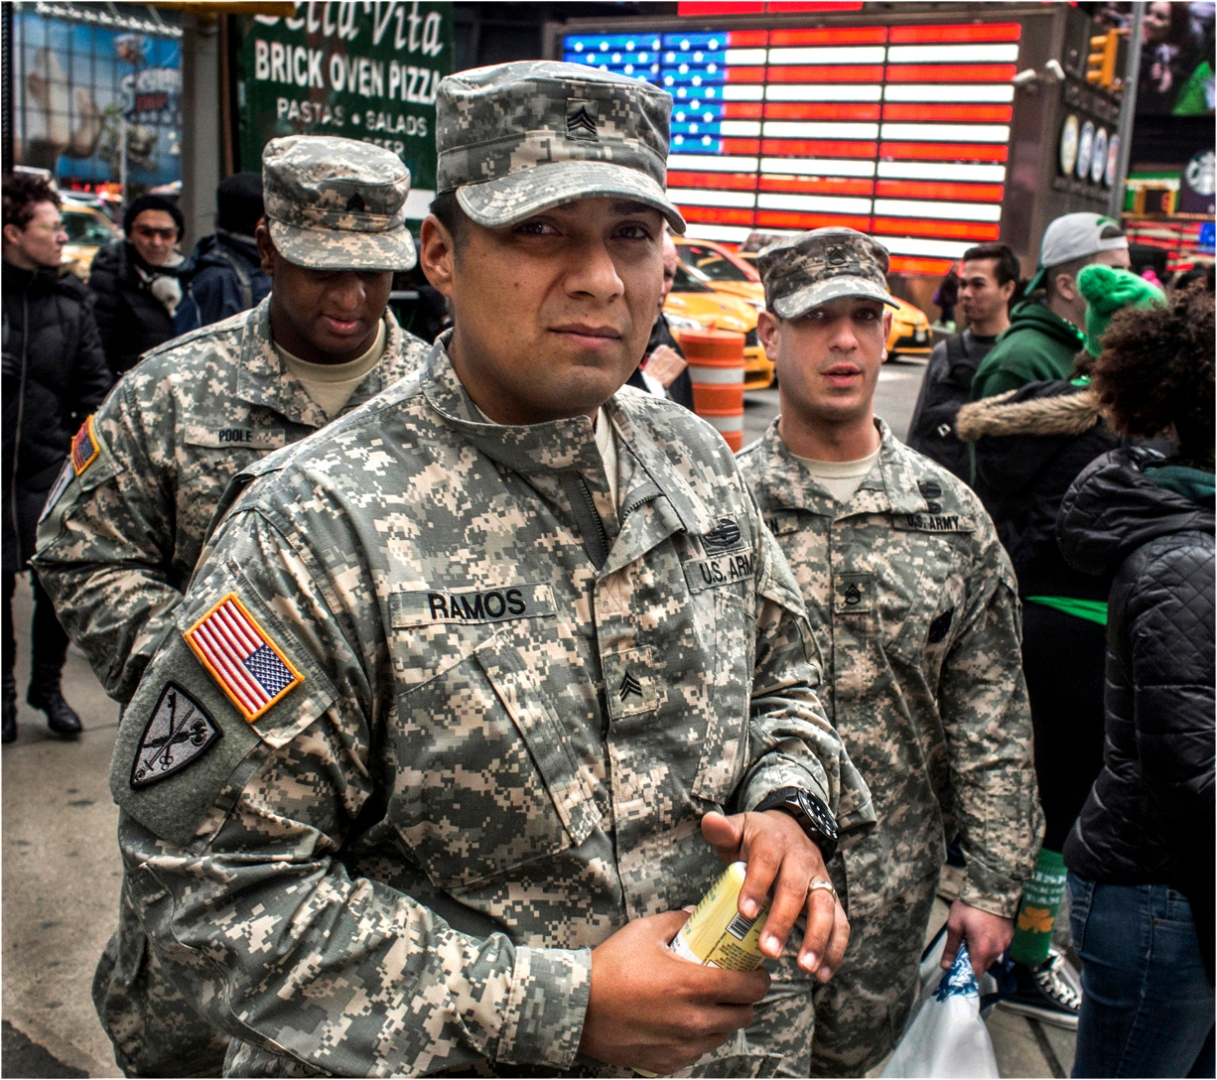 *St-Patty-3-SOLDIERS-FLAG!-2015 copy 2